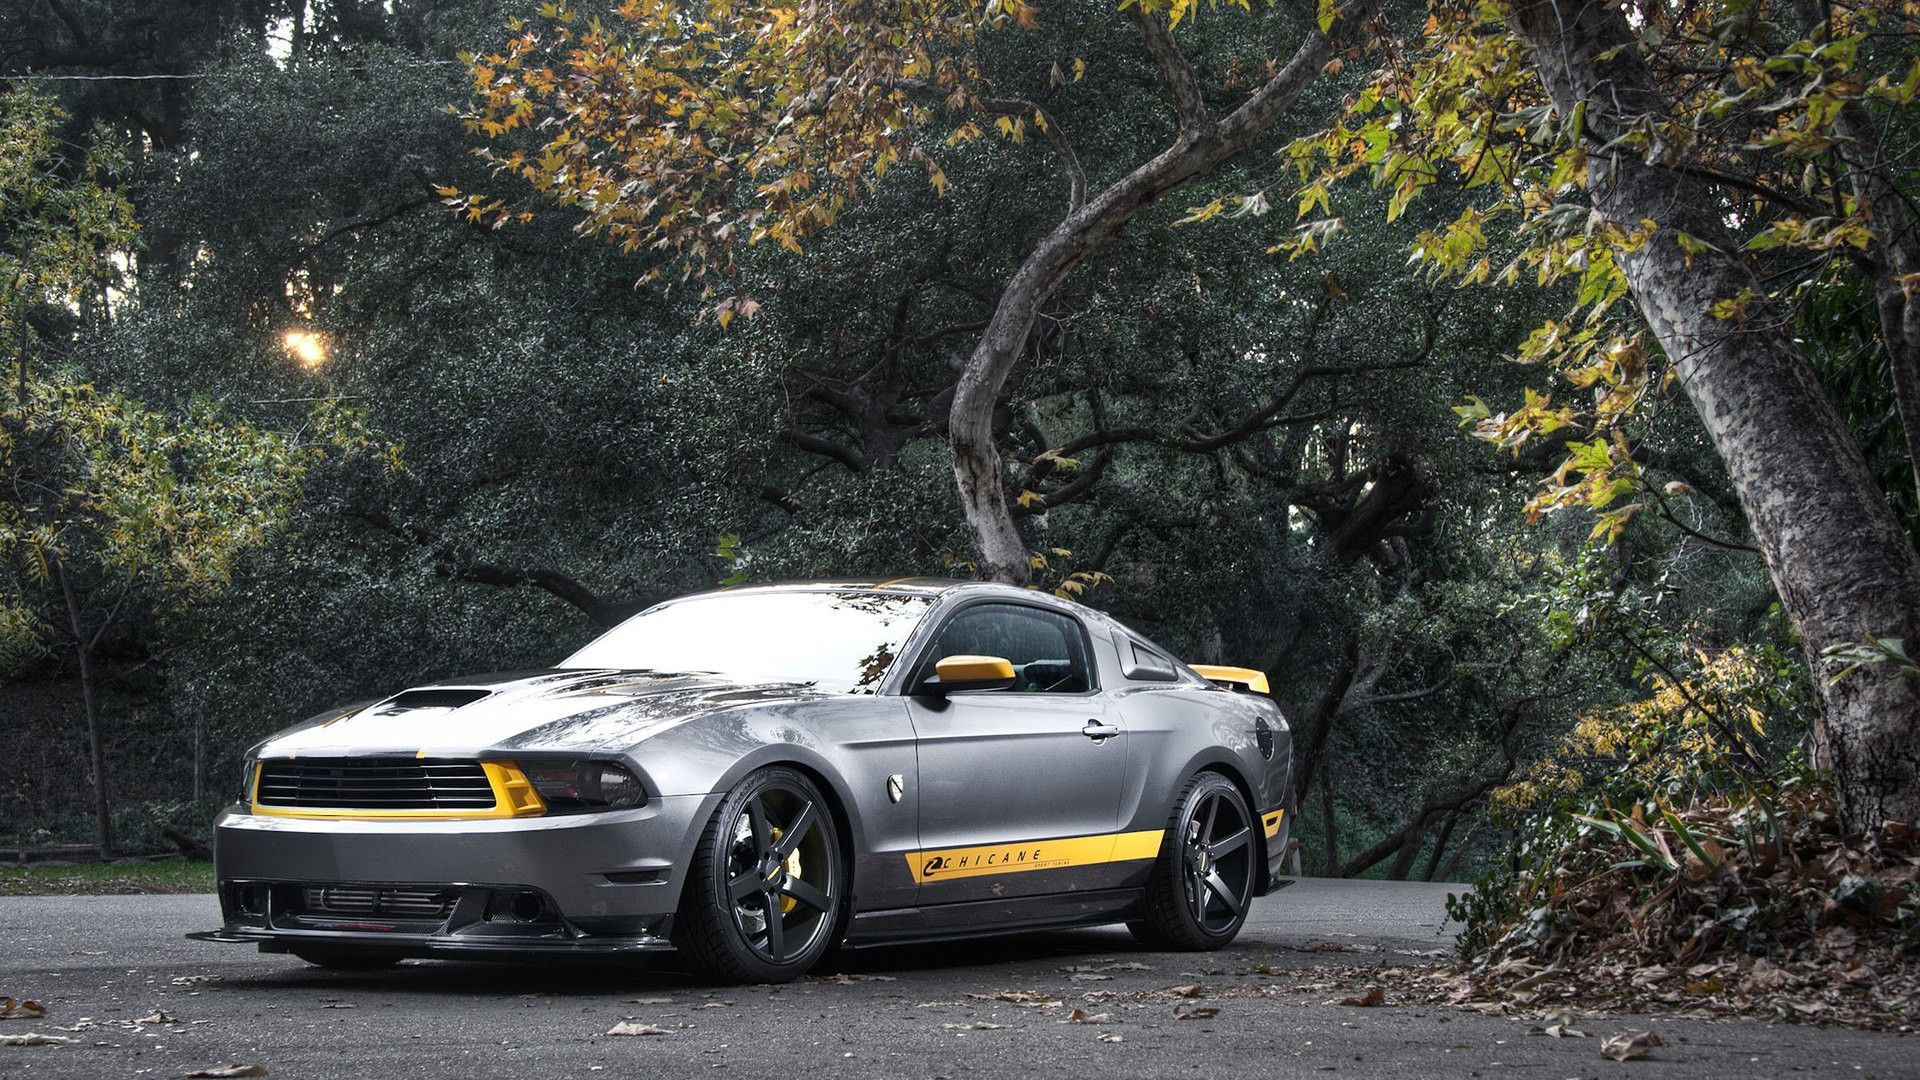 Ford Mustang Gt Monster Wallpaper Google Search Fondos De Pantalla De Coches Ford Mustang Gt Ford Mustang